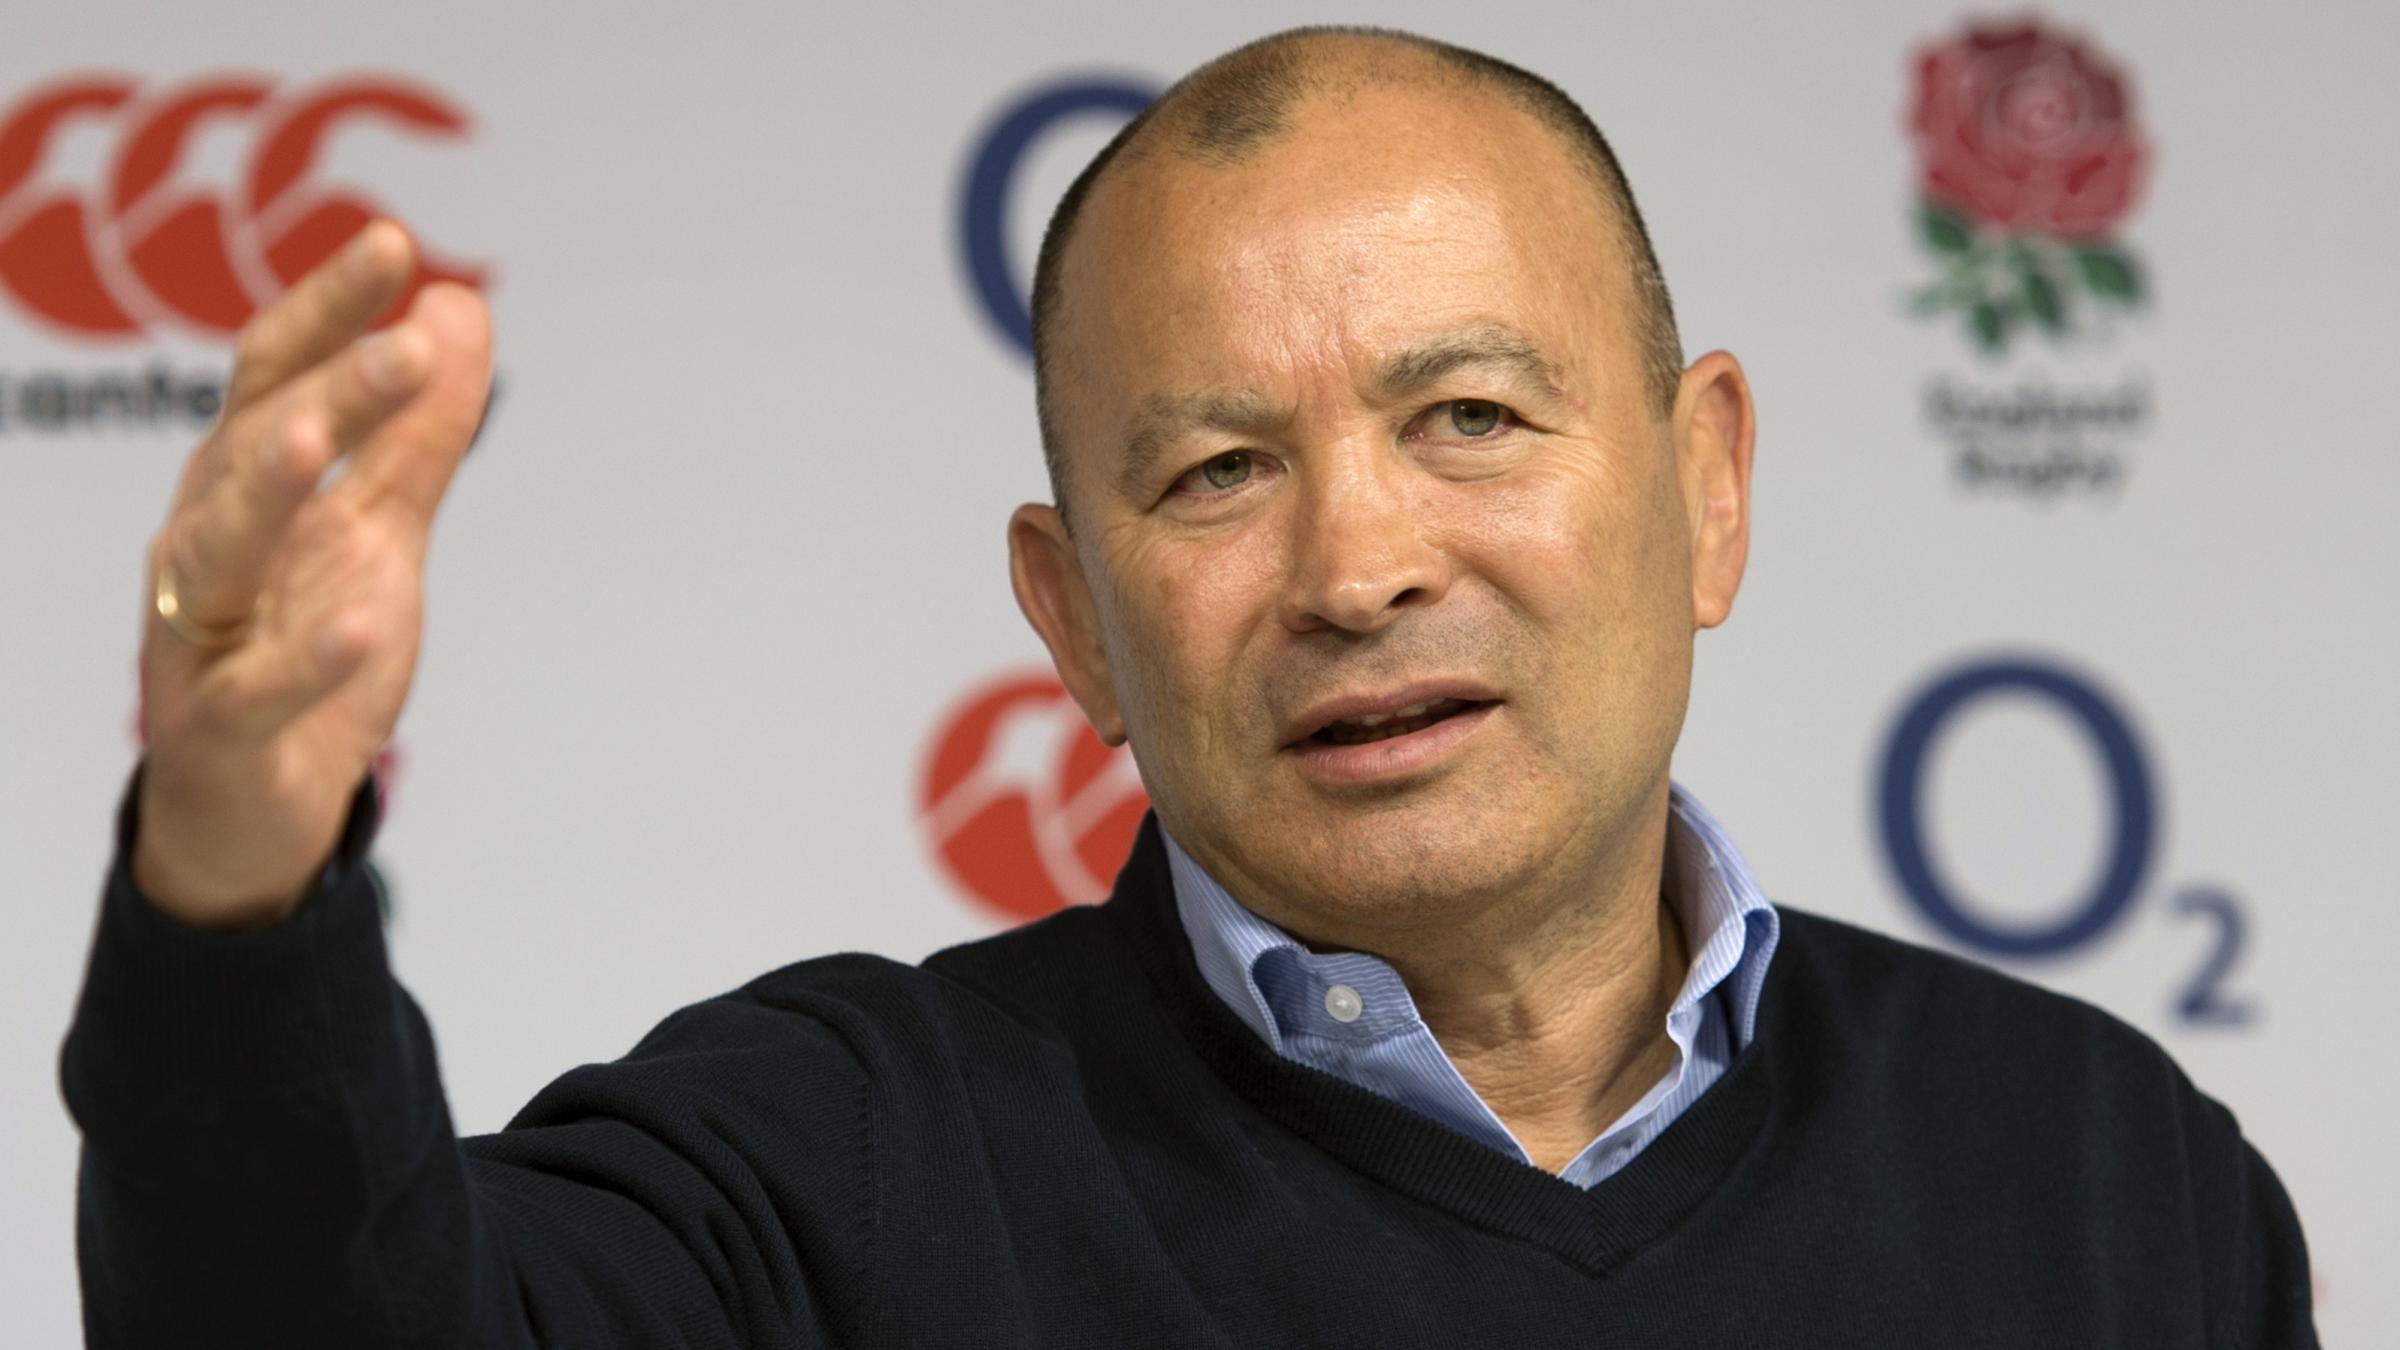 Eddie Jones plans England training camp in Japan next year ahead of World Cup (From Kidderminster Shuttle)